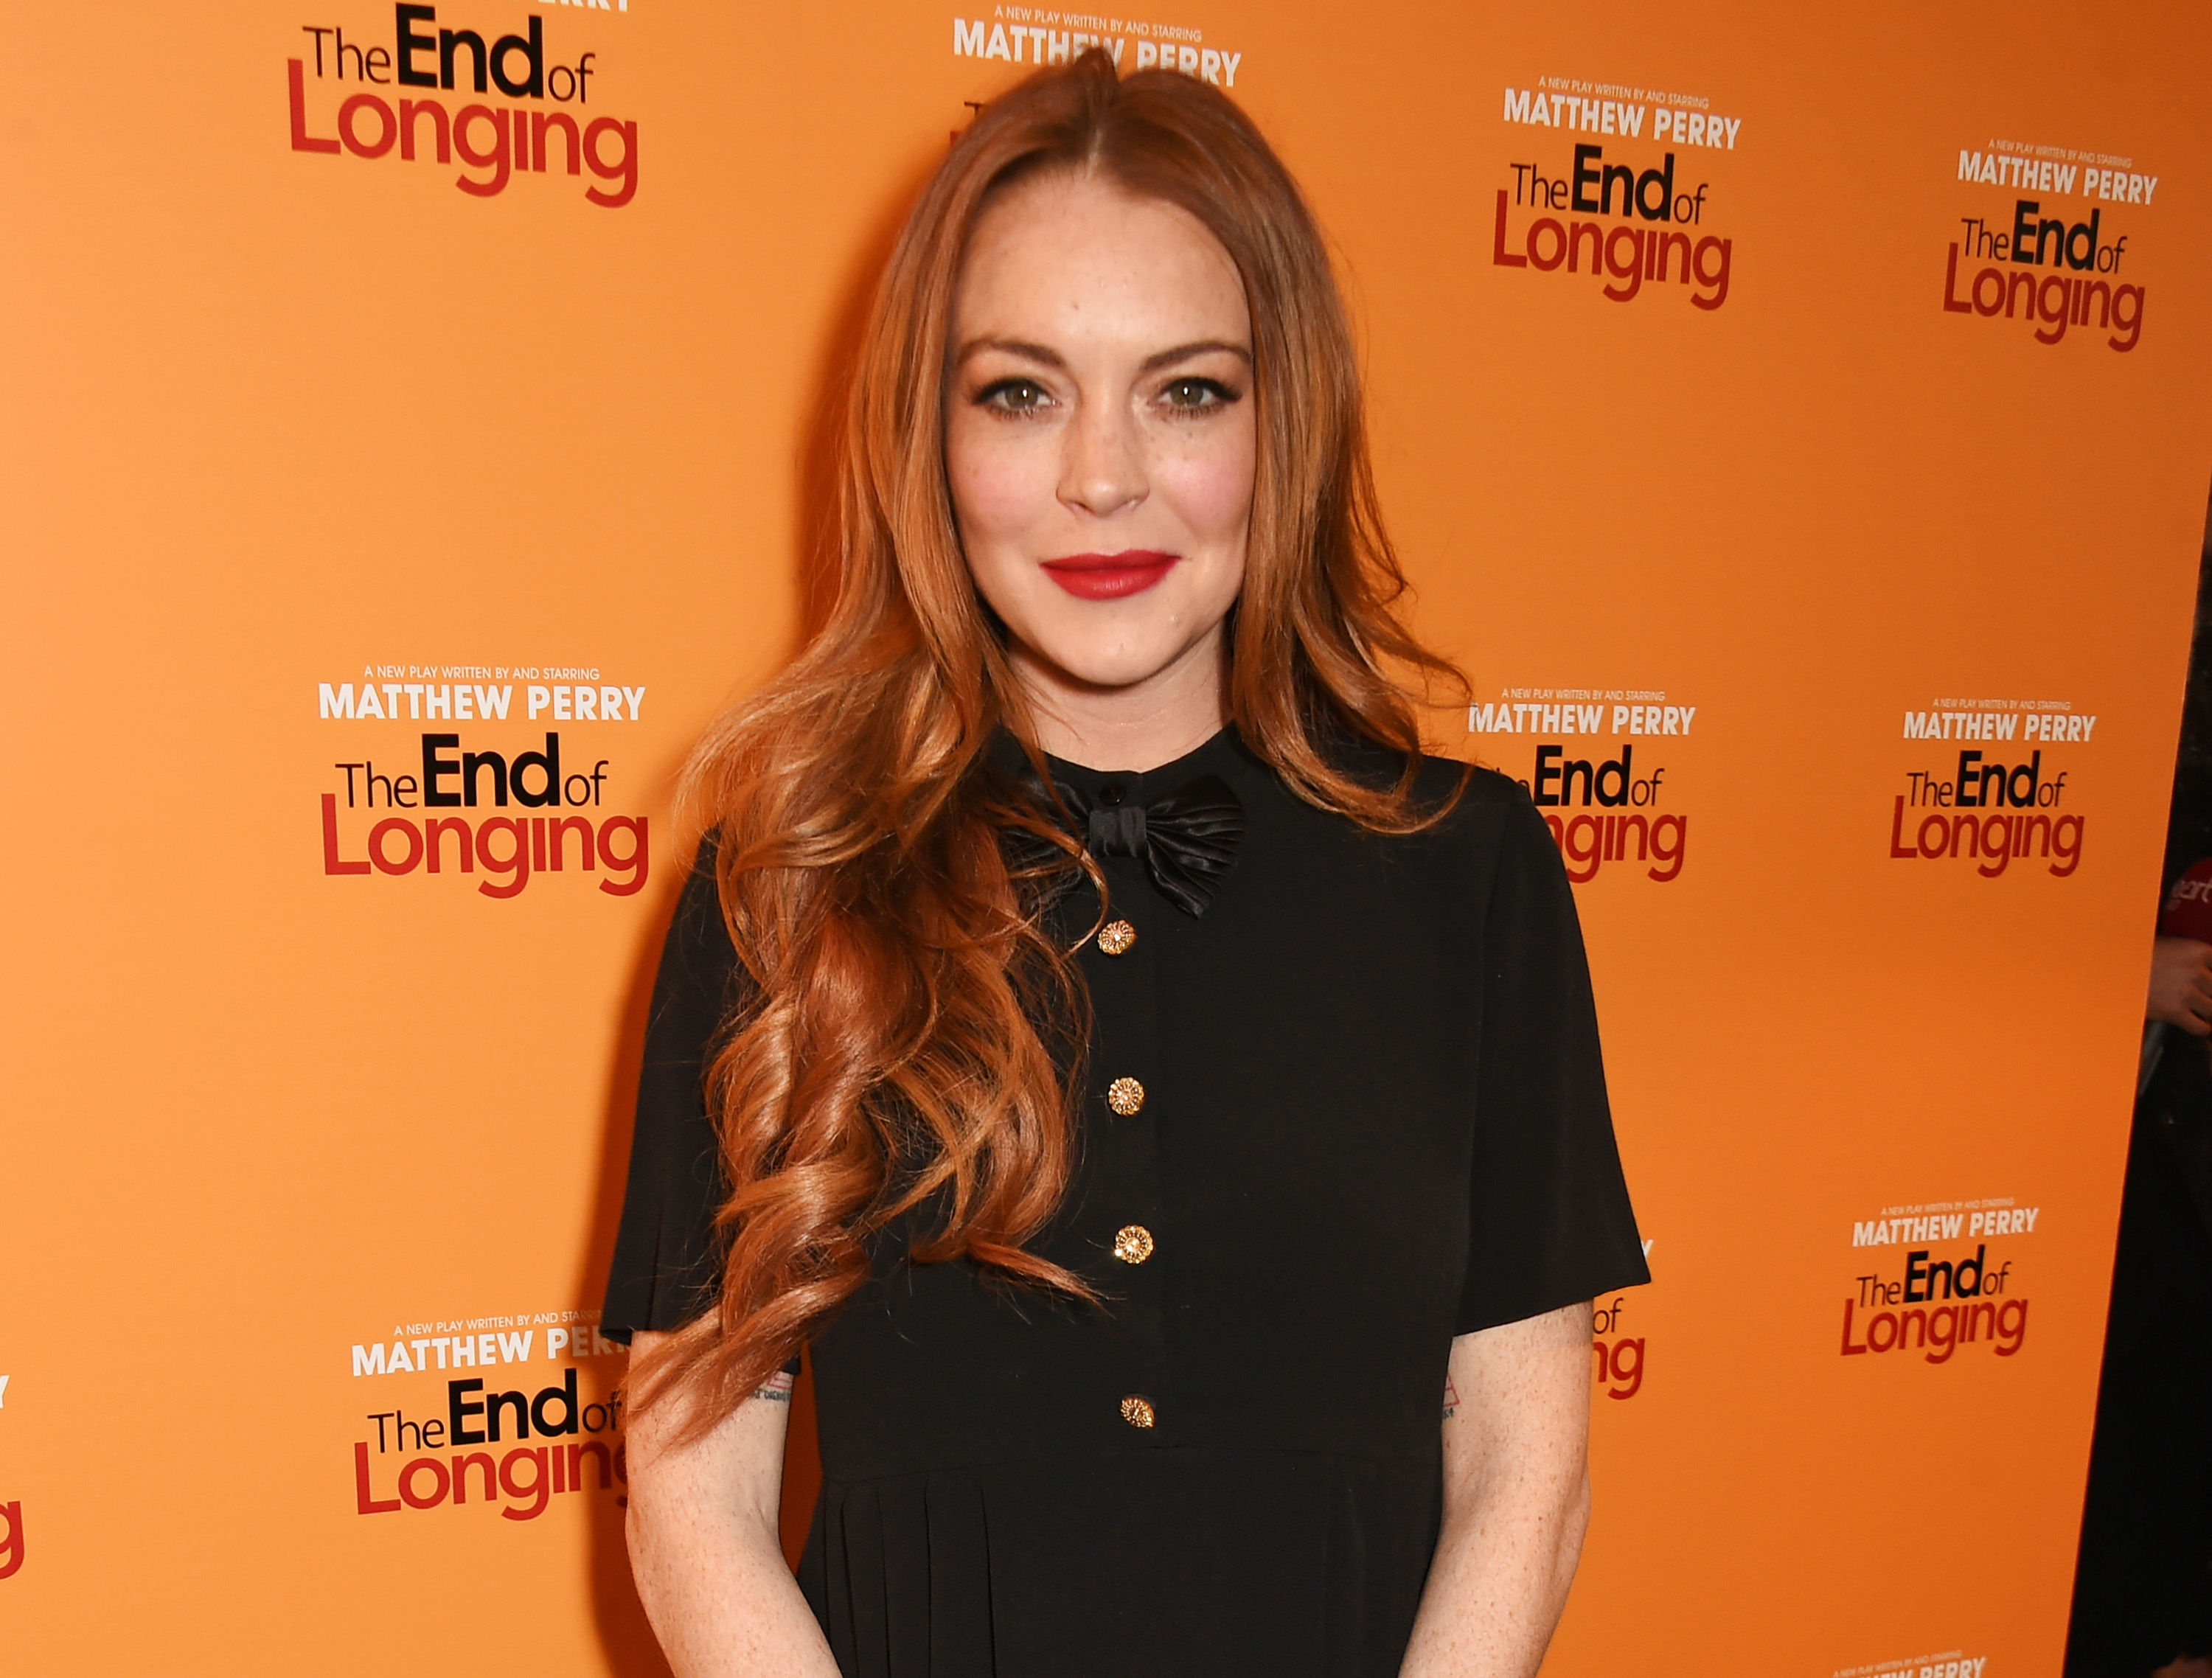 Lindsay Lohan attends an after party celebrating the World Premiere of 'The End Of Longing', written by and starring Matthew Perry, on February 11, 2016 in London, England.